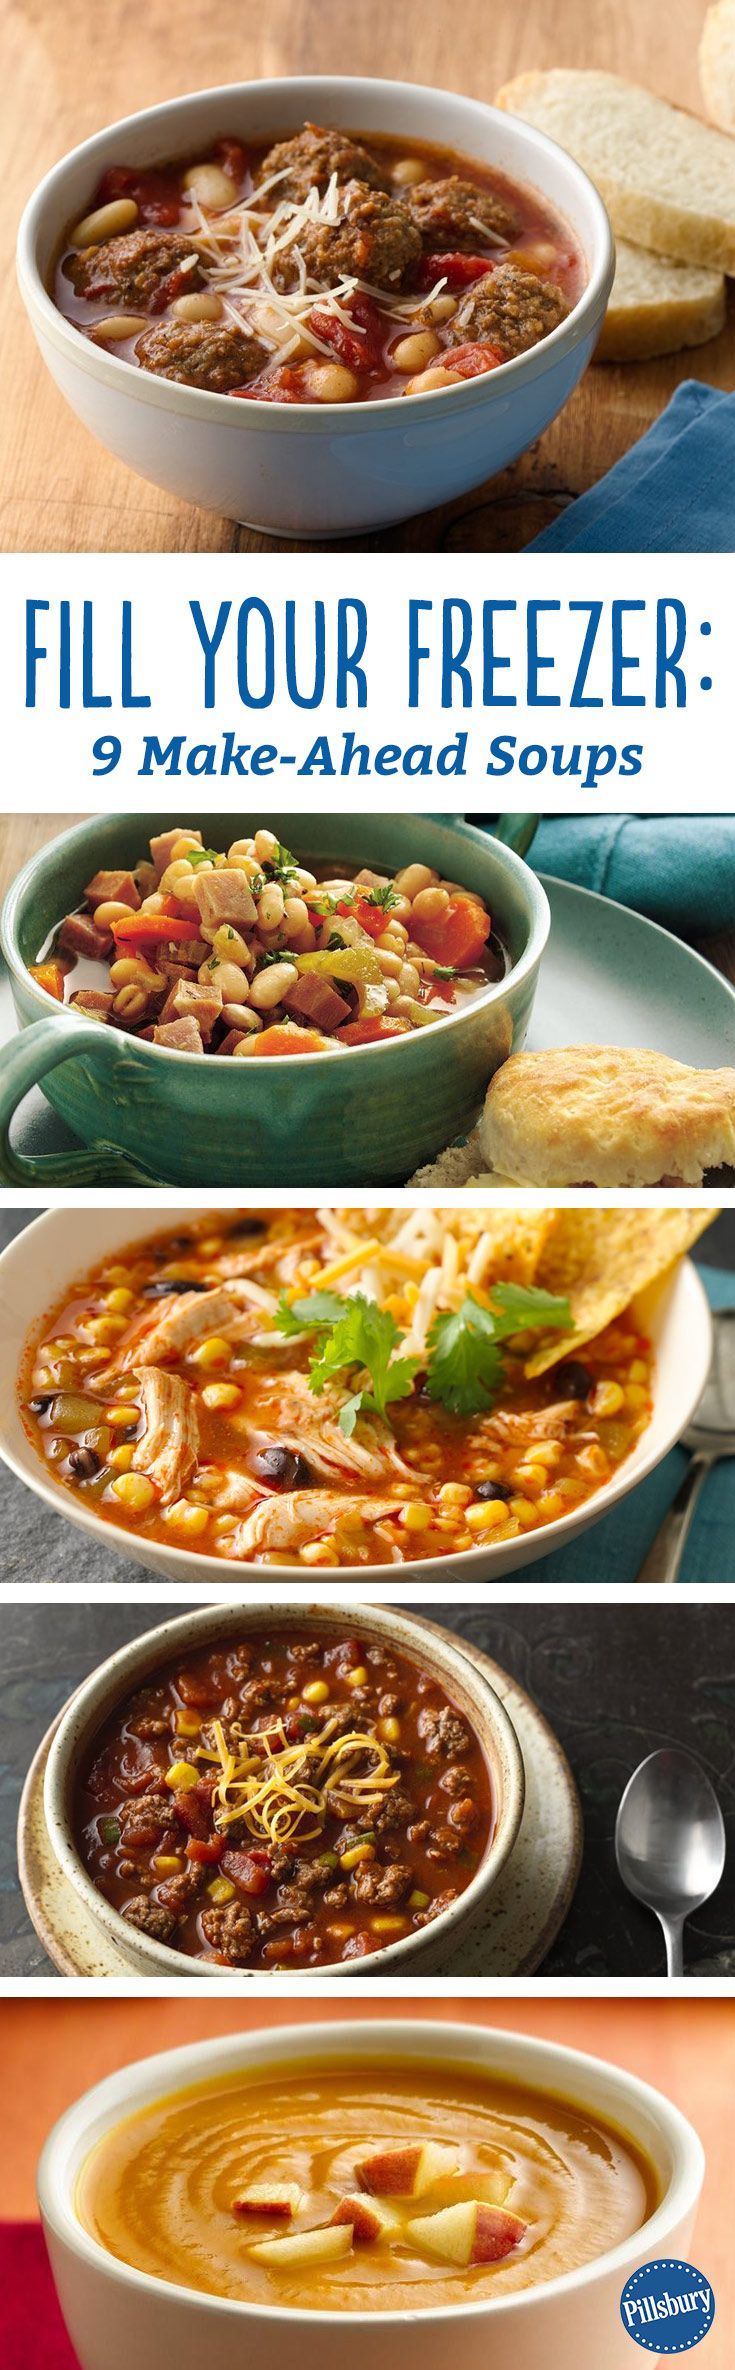 Different soups to make